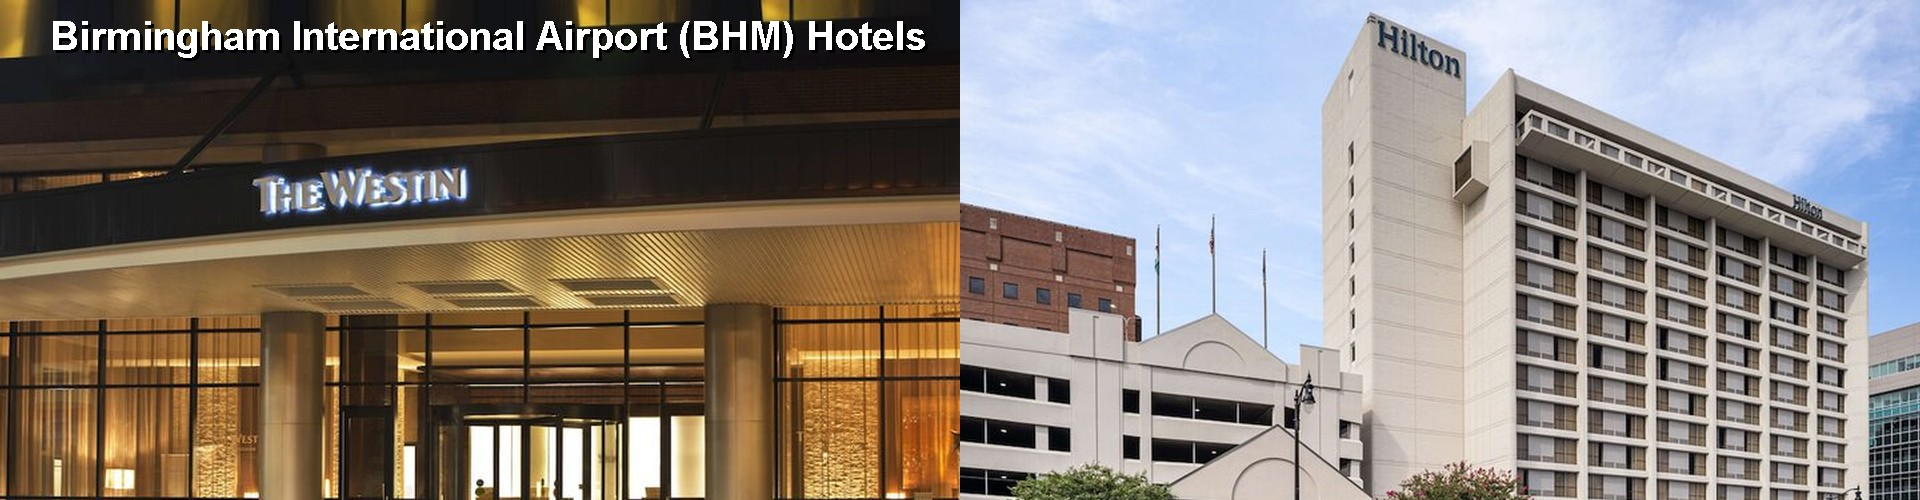 4 Best Hotels near Birmingham International Airport (BHM)